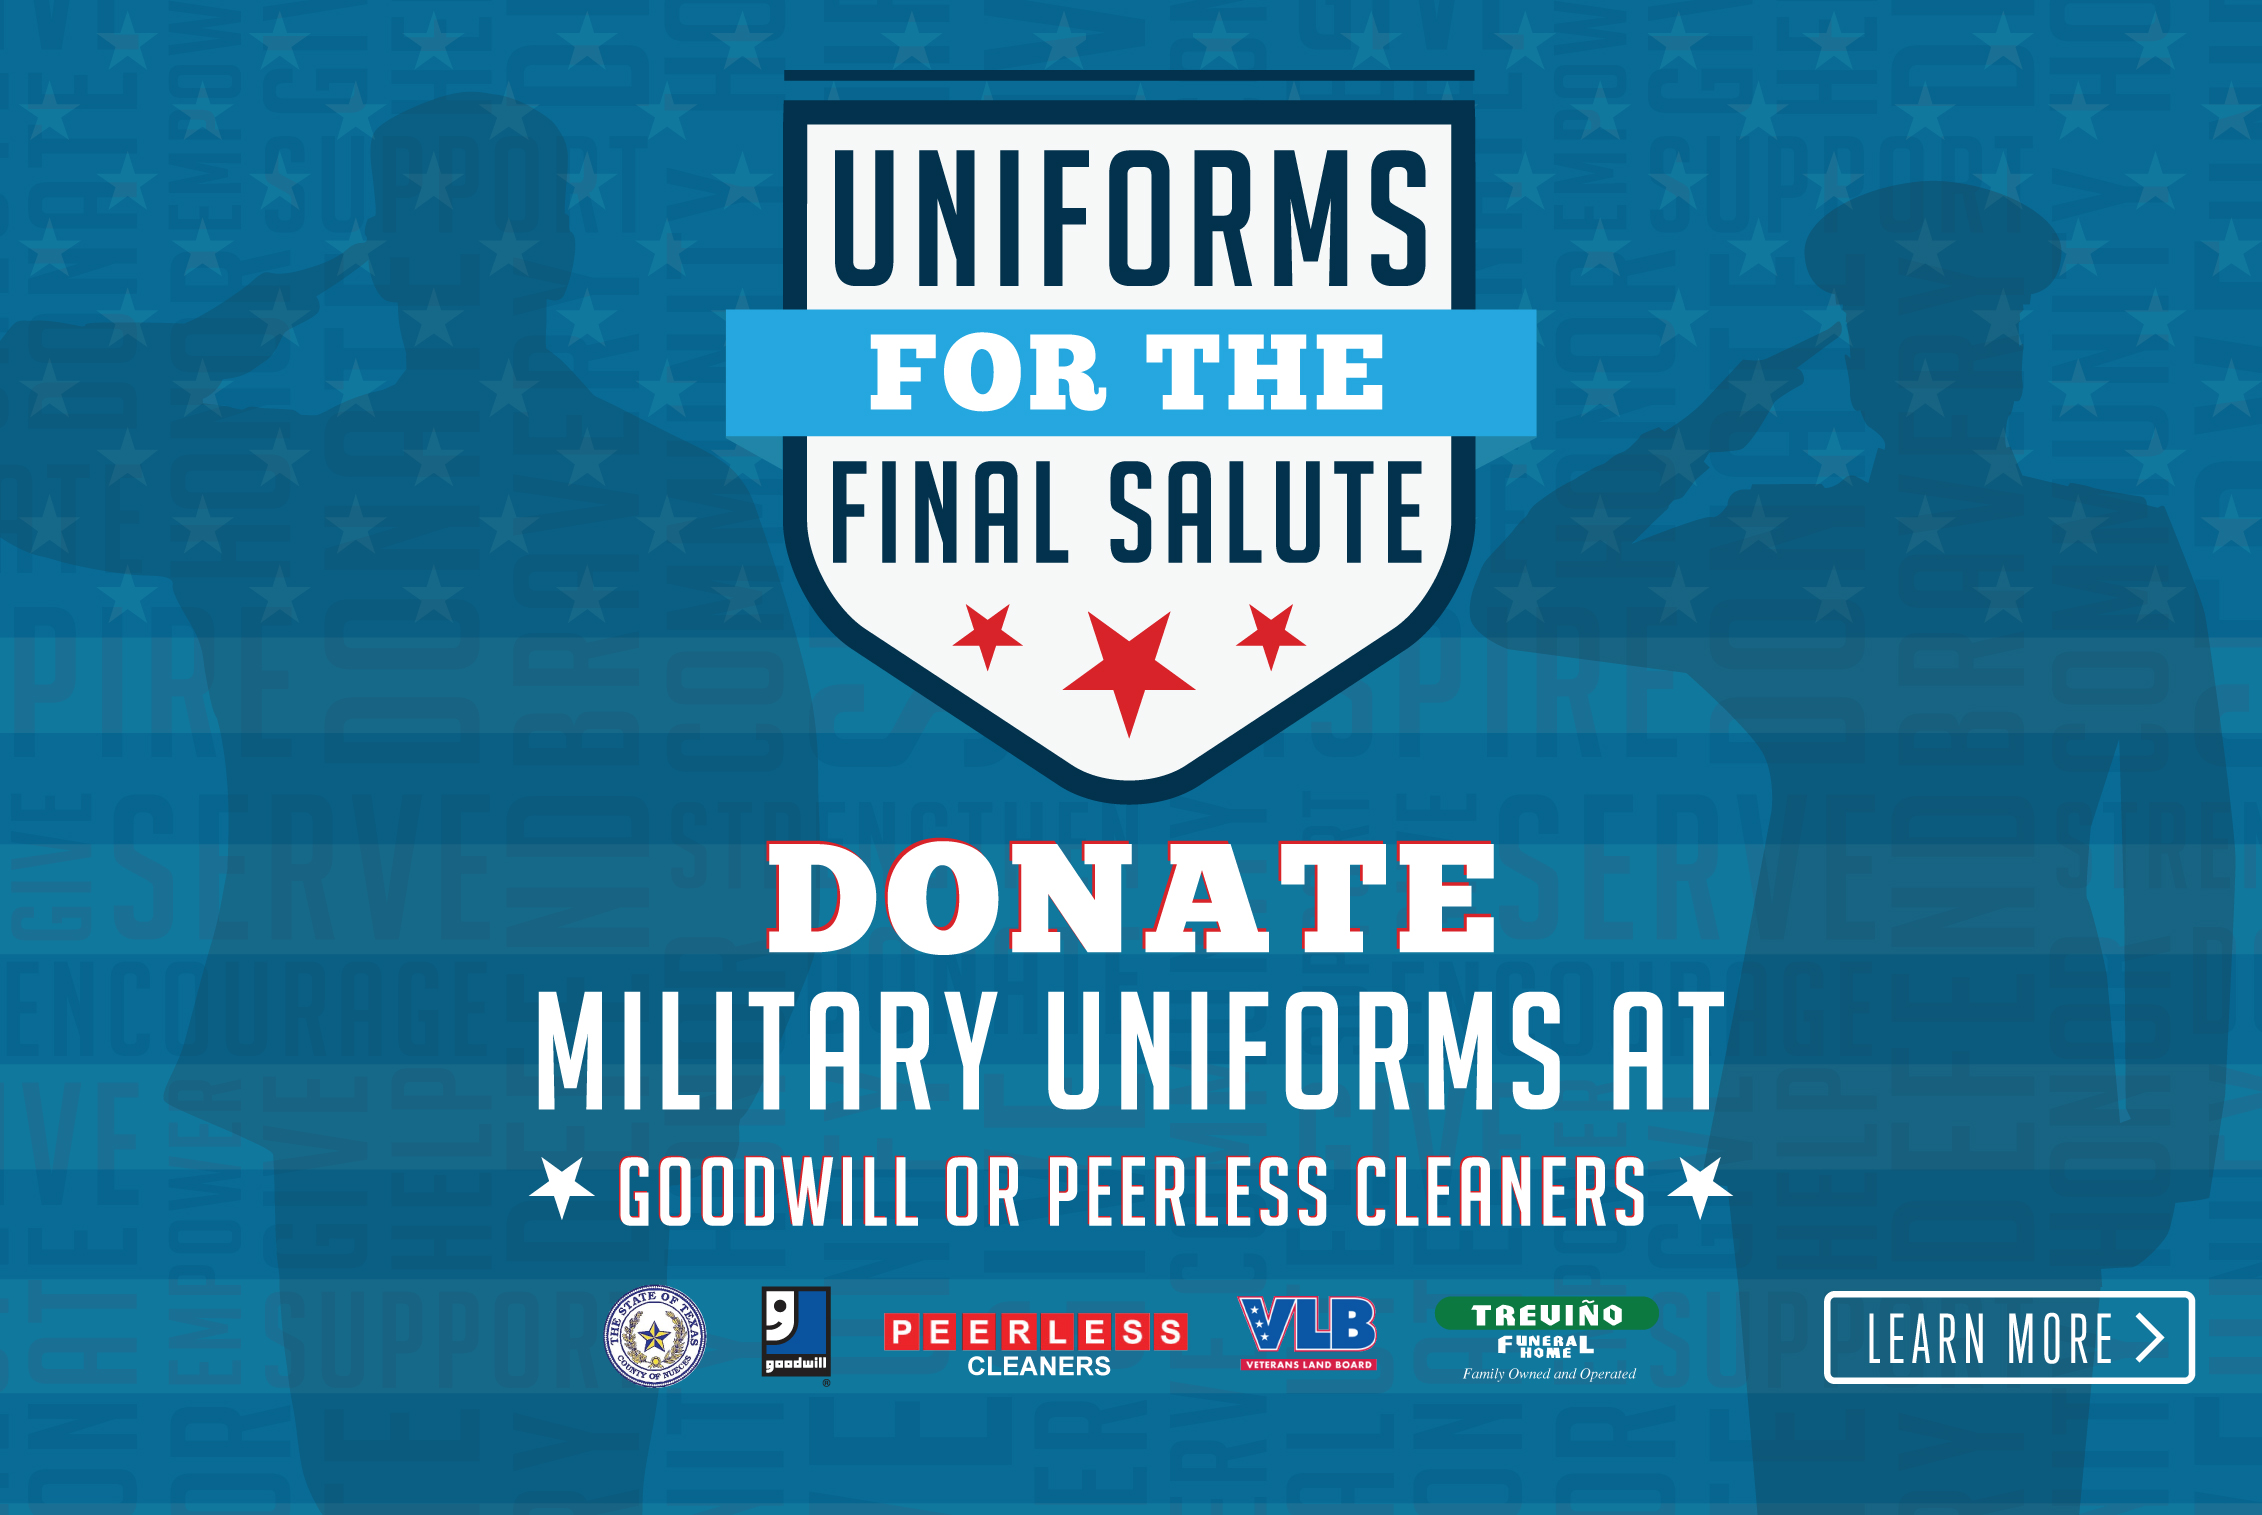 Uniforms for the Final Salute